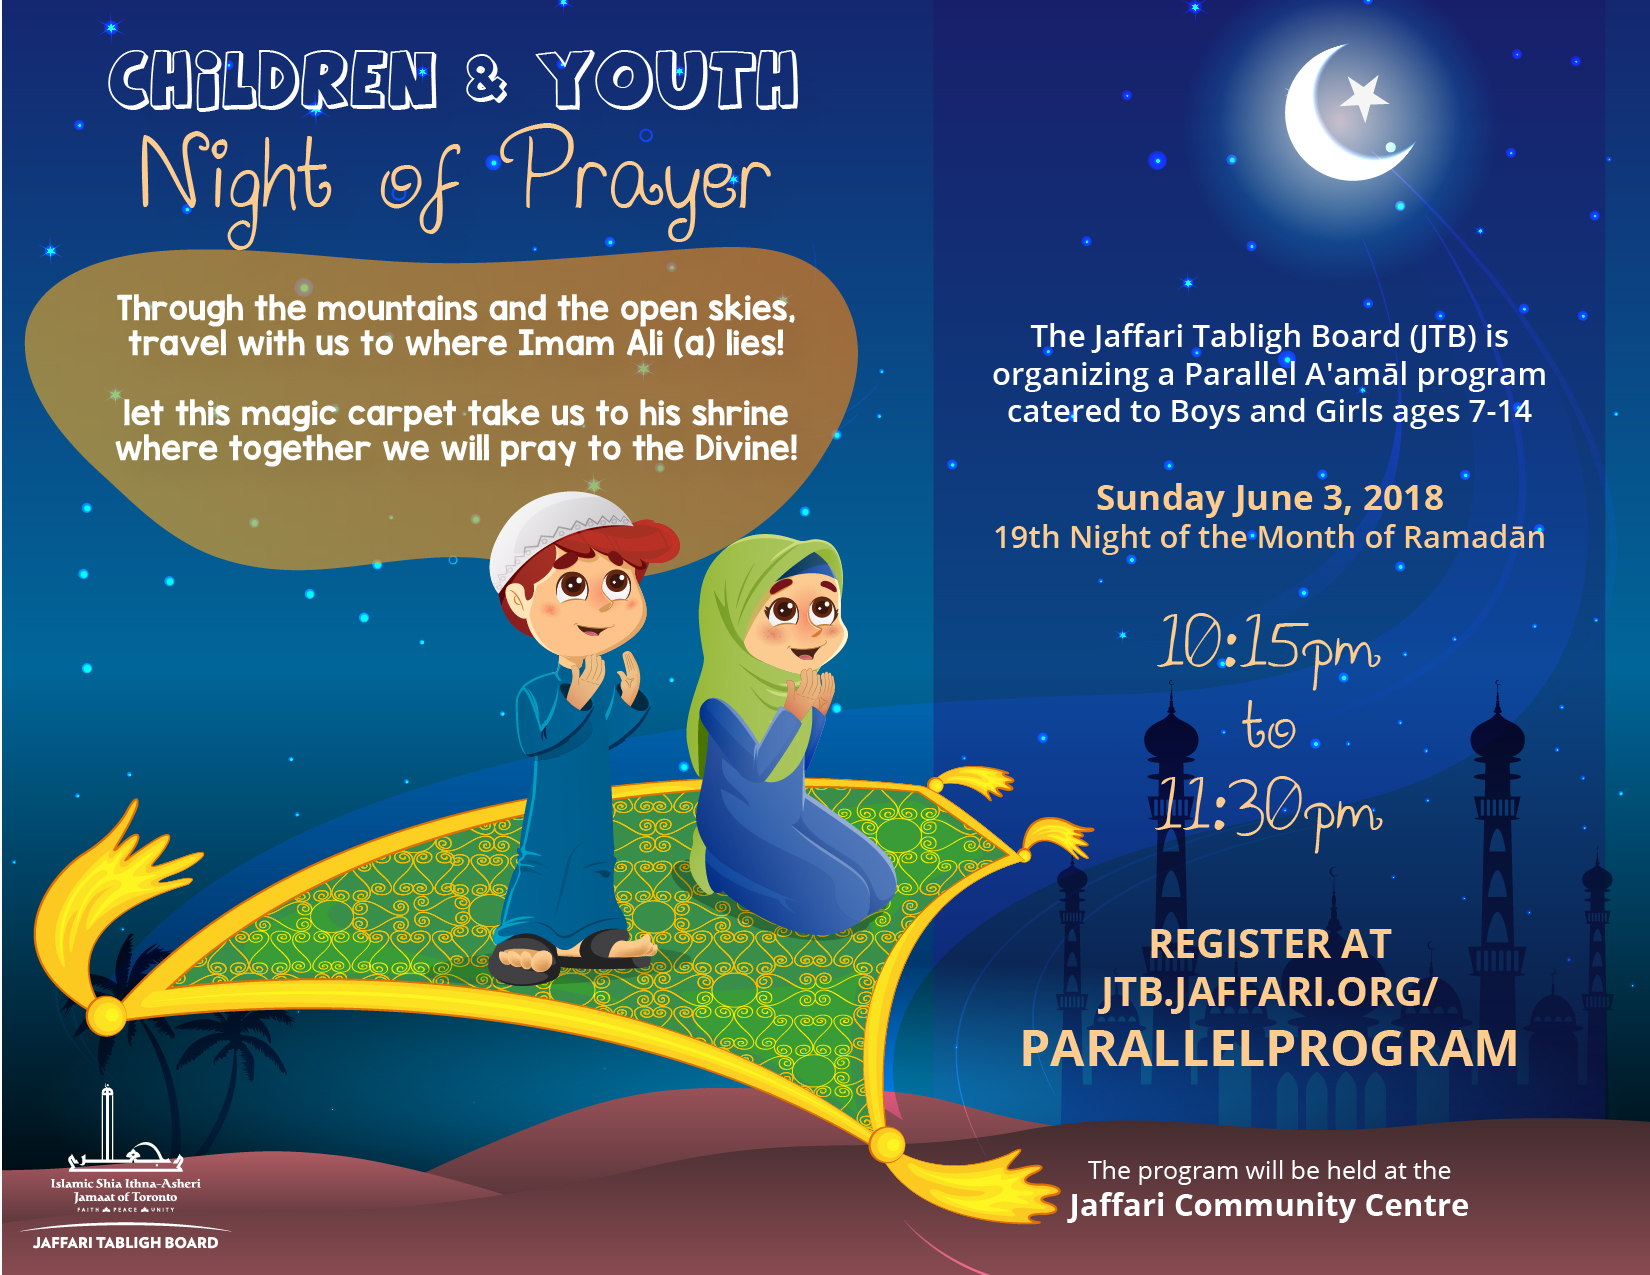 Children & Youth: Night of Prayer